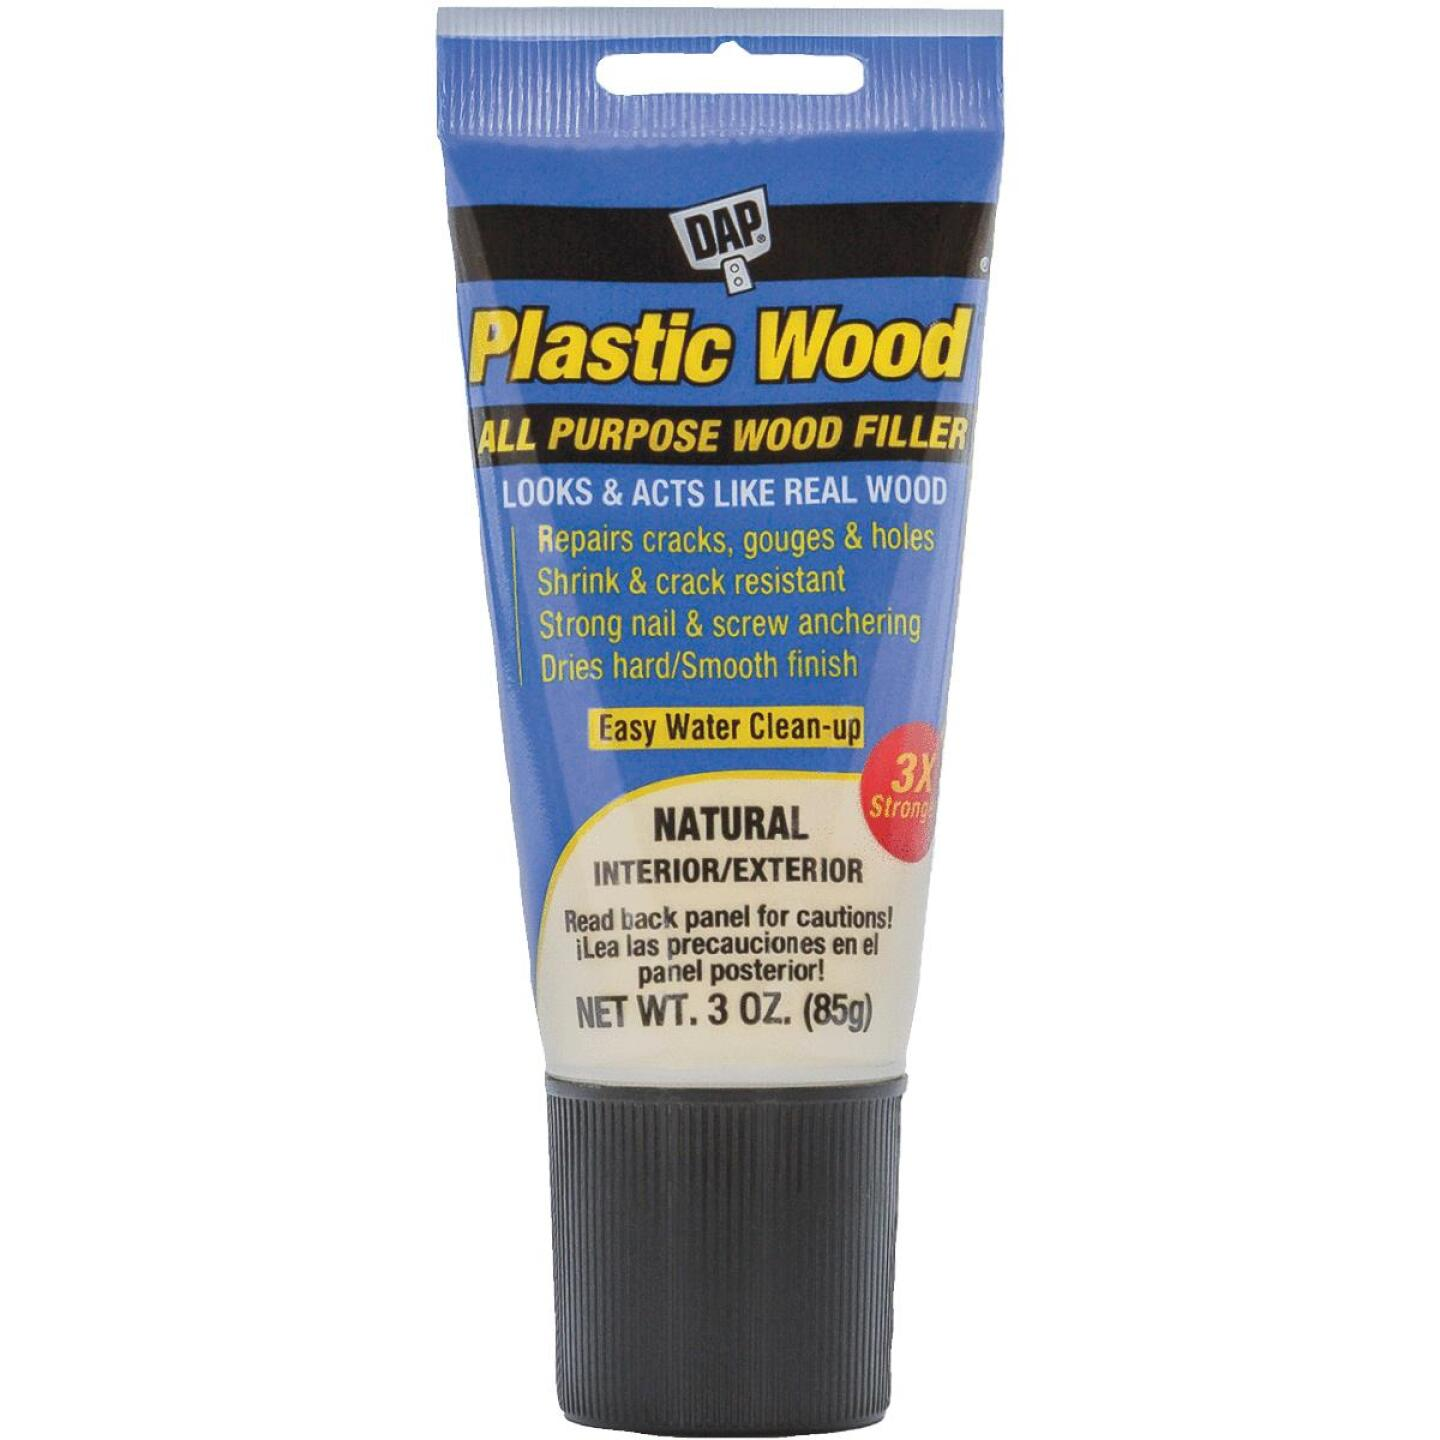 Dap Plastic Wood 3 Oz. Natural All Purpose Wood Filler Image 1